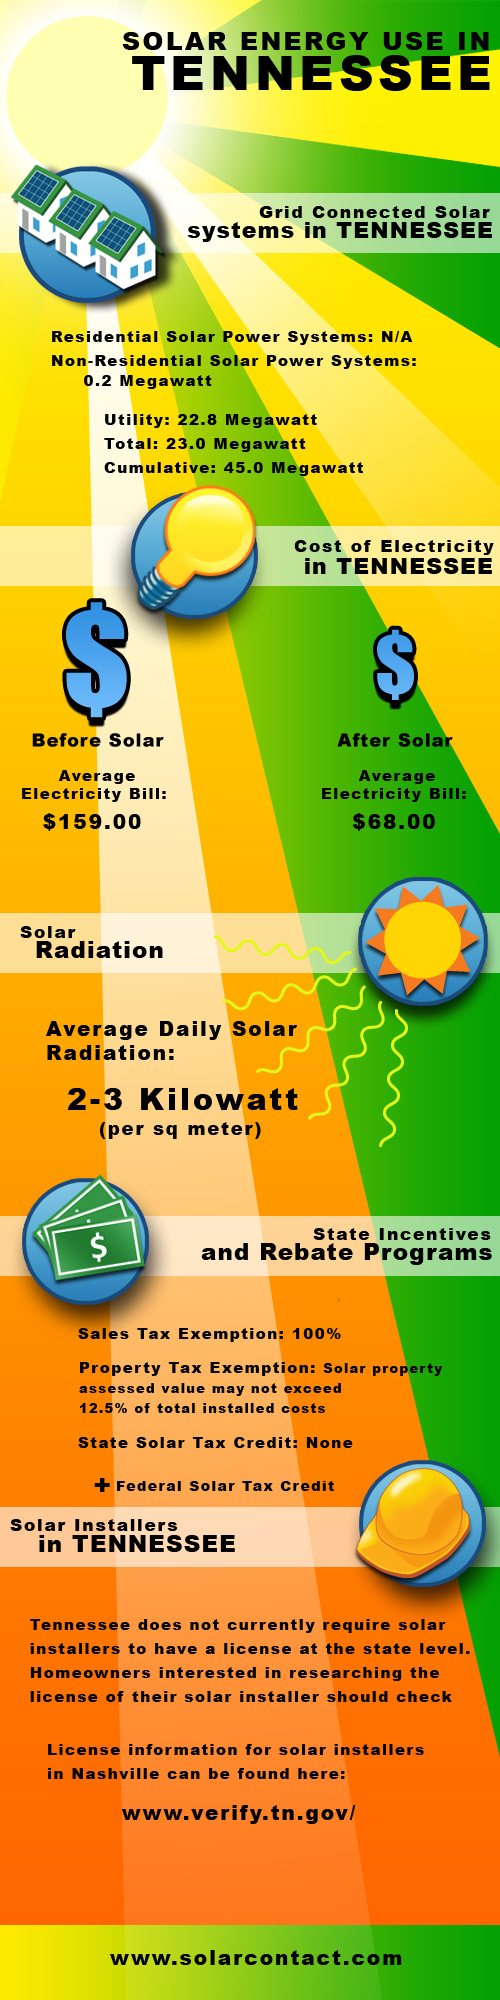 Fact Sheet Solar Energy Use in Tennessee